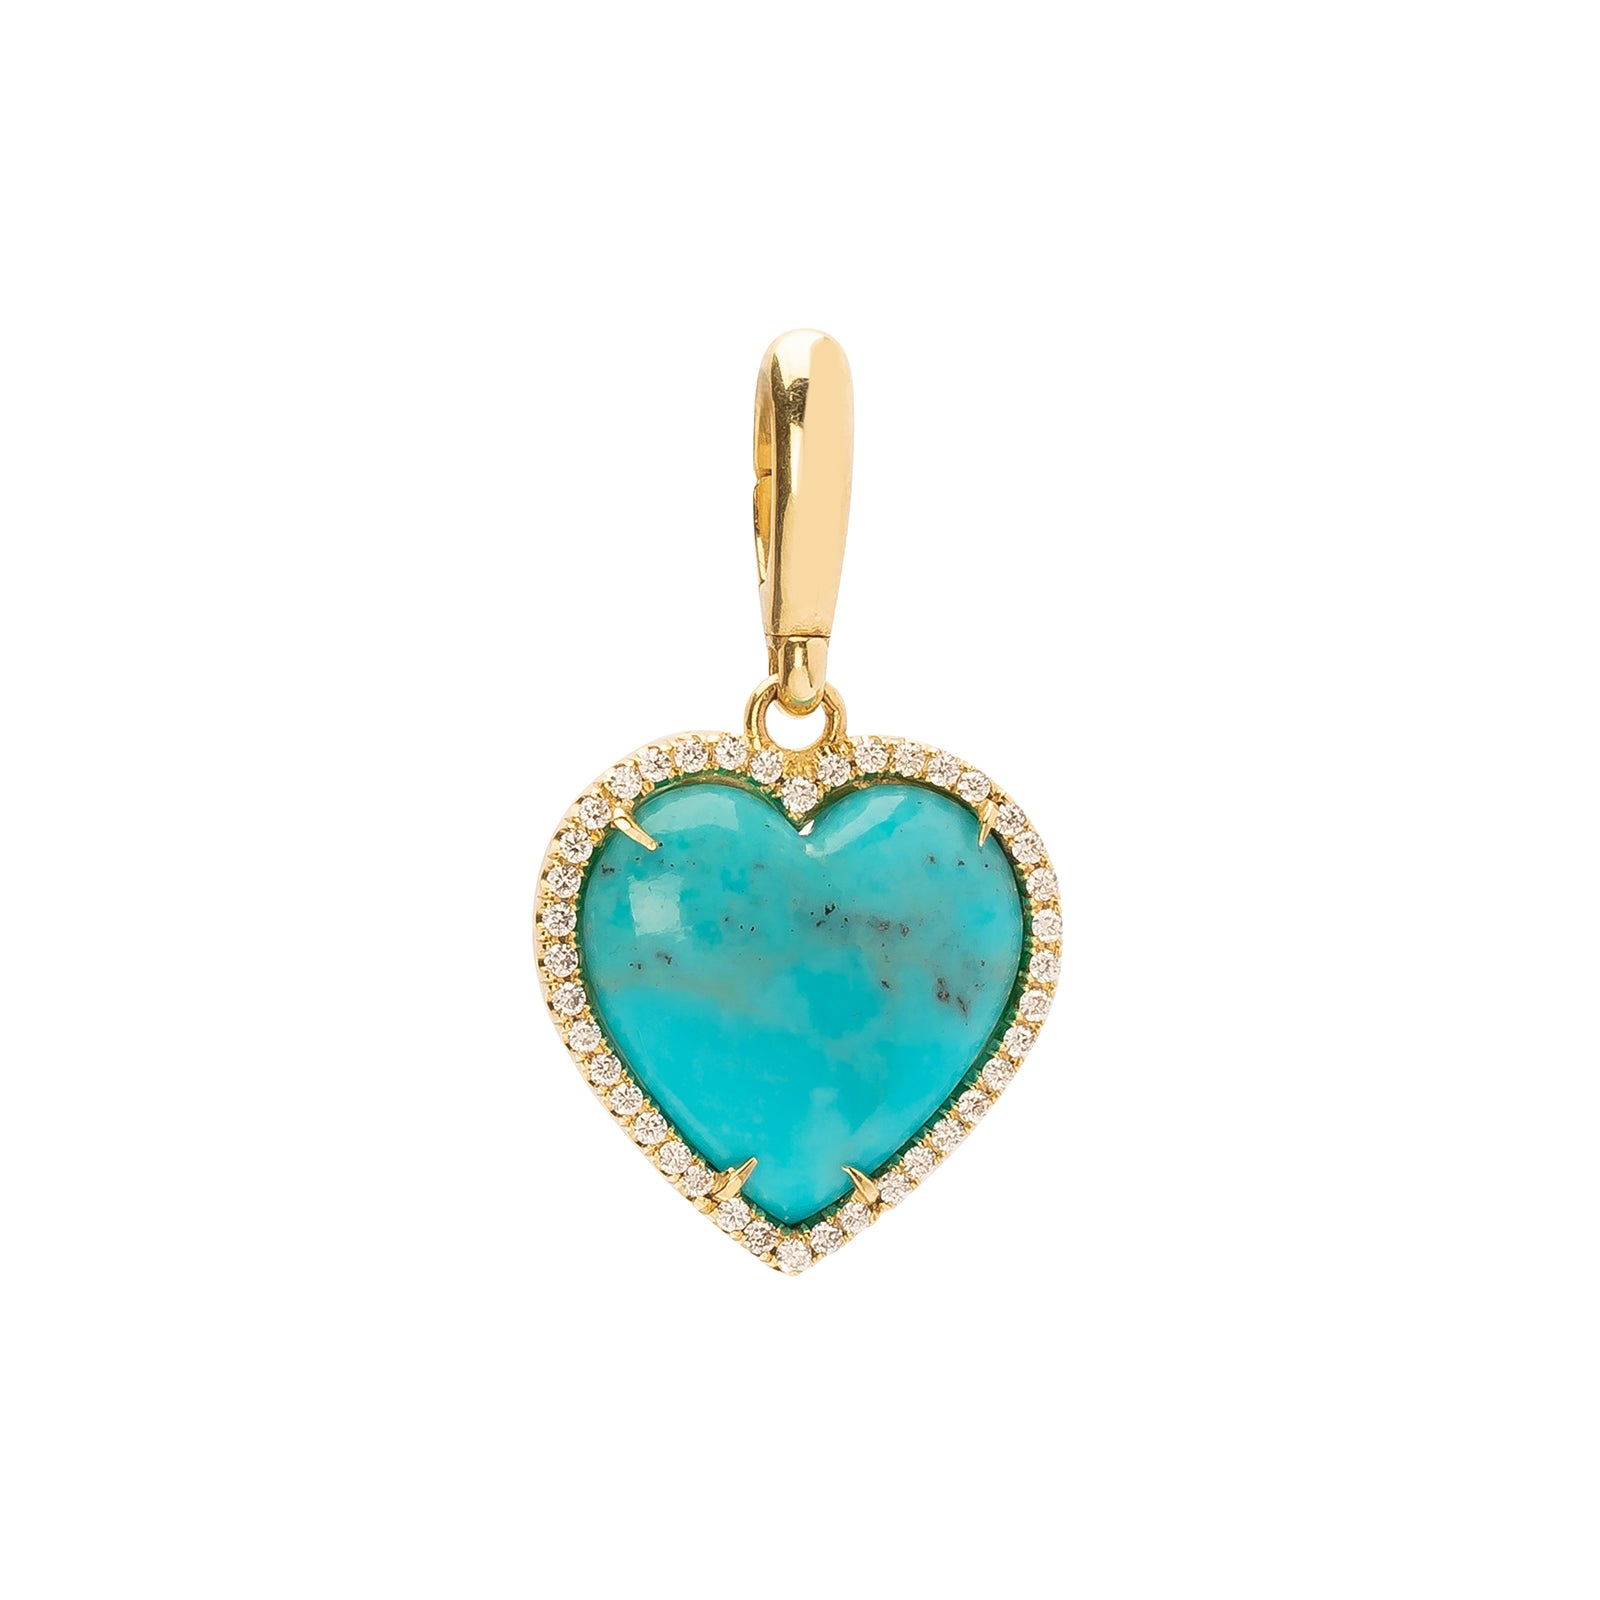 Jenna Blake Heart in Diamond Frame Pendant - Turquoise - Charms & Pendants - Broken English Jewelry